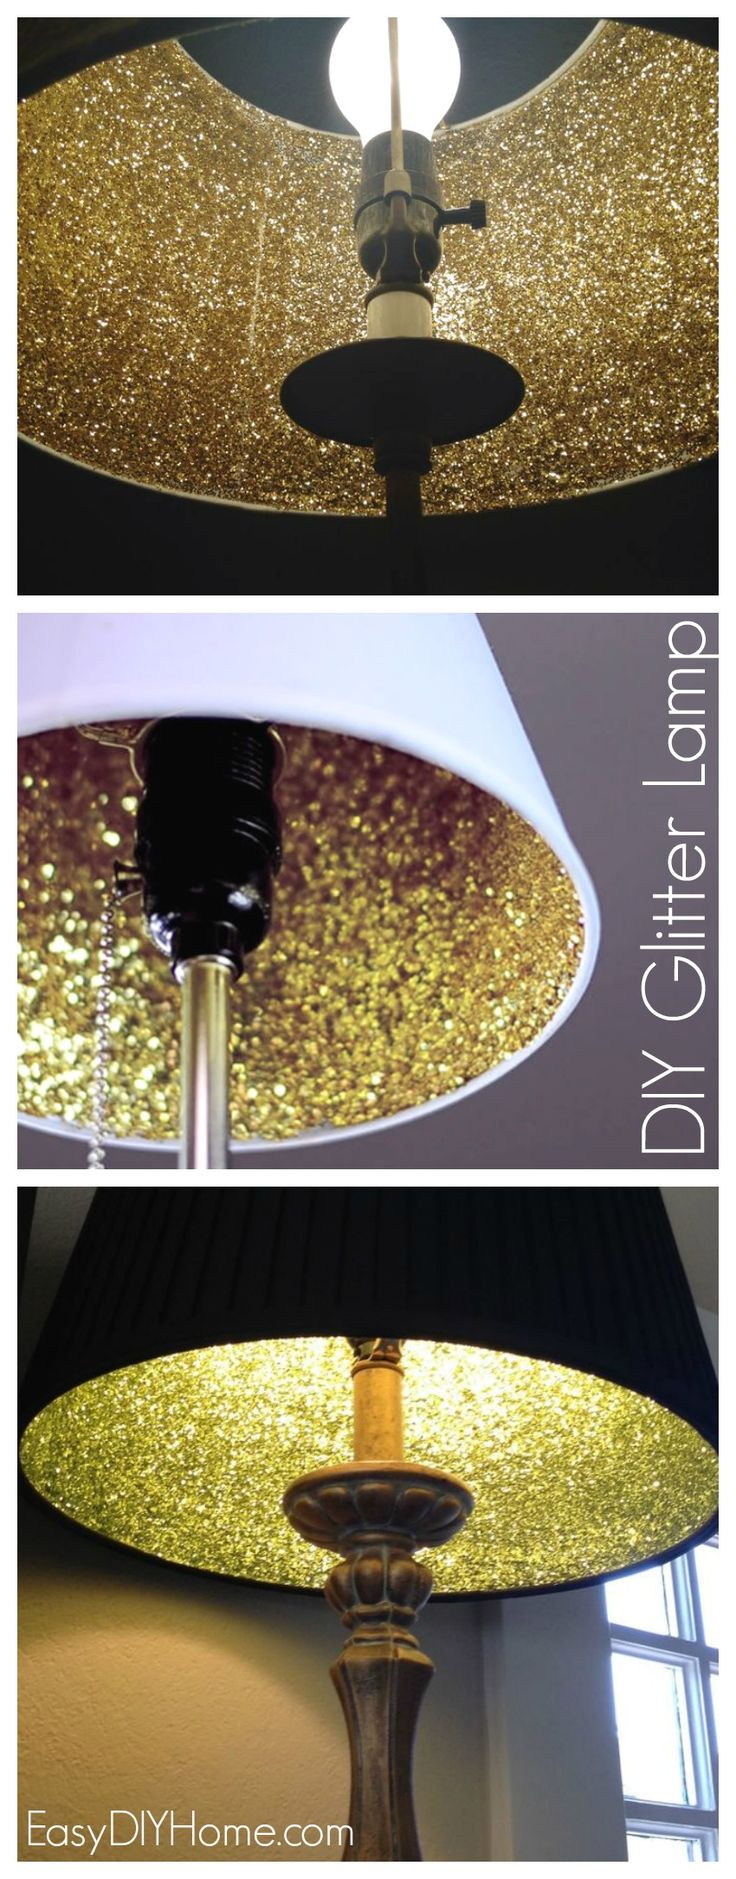 #EasyDIYHome : Glitter Lamp Project - dress up a plain lamp shade…